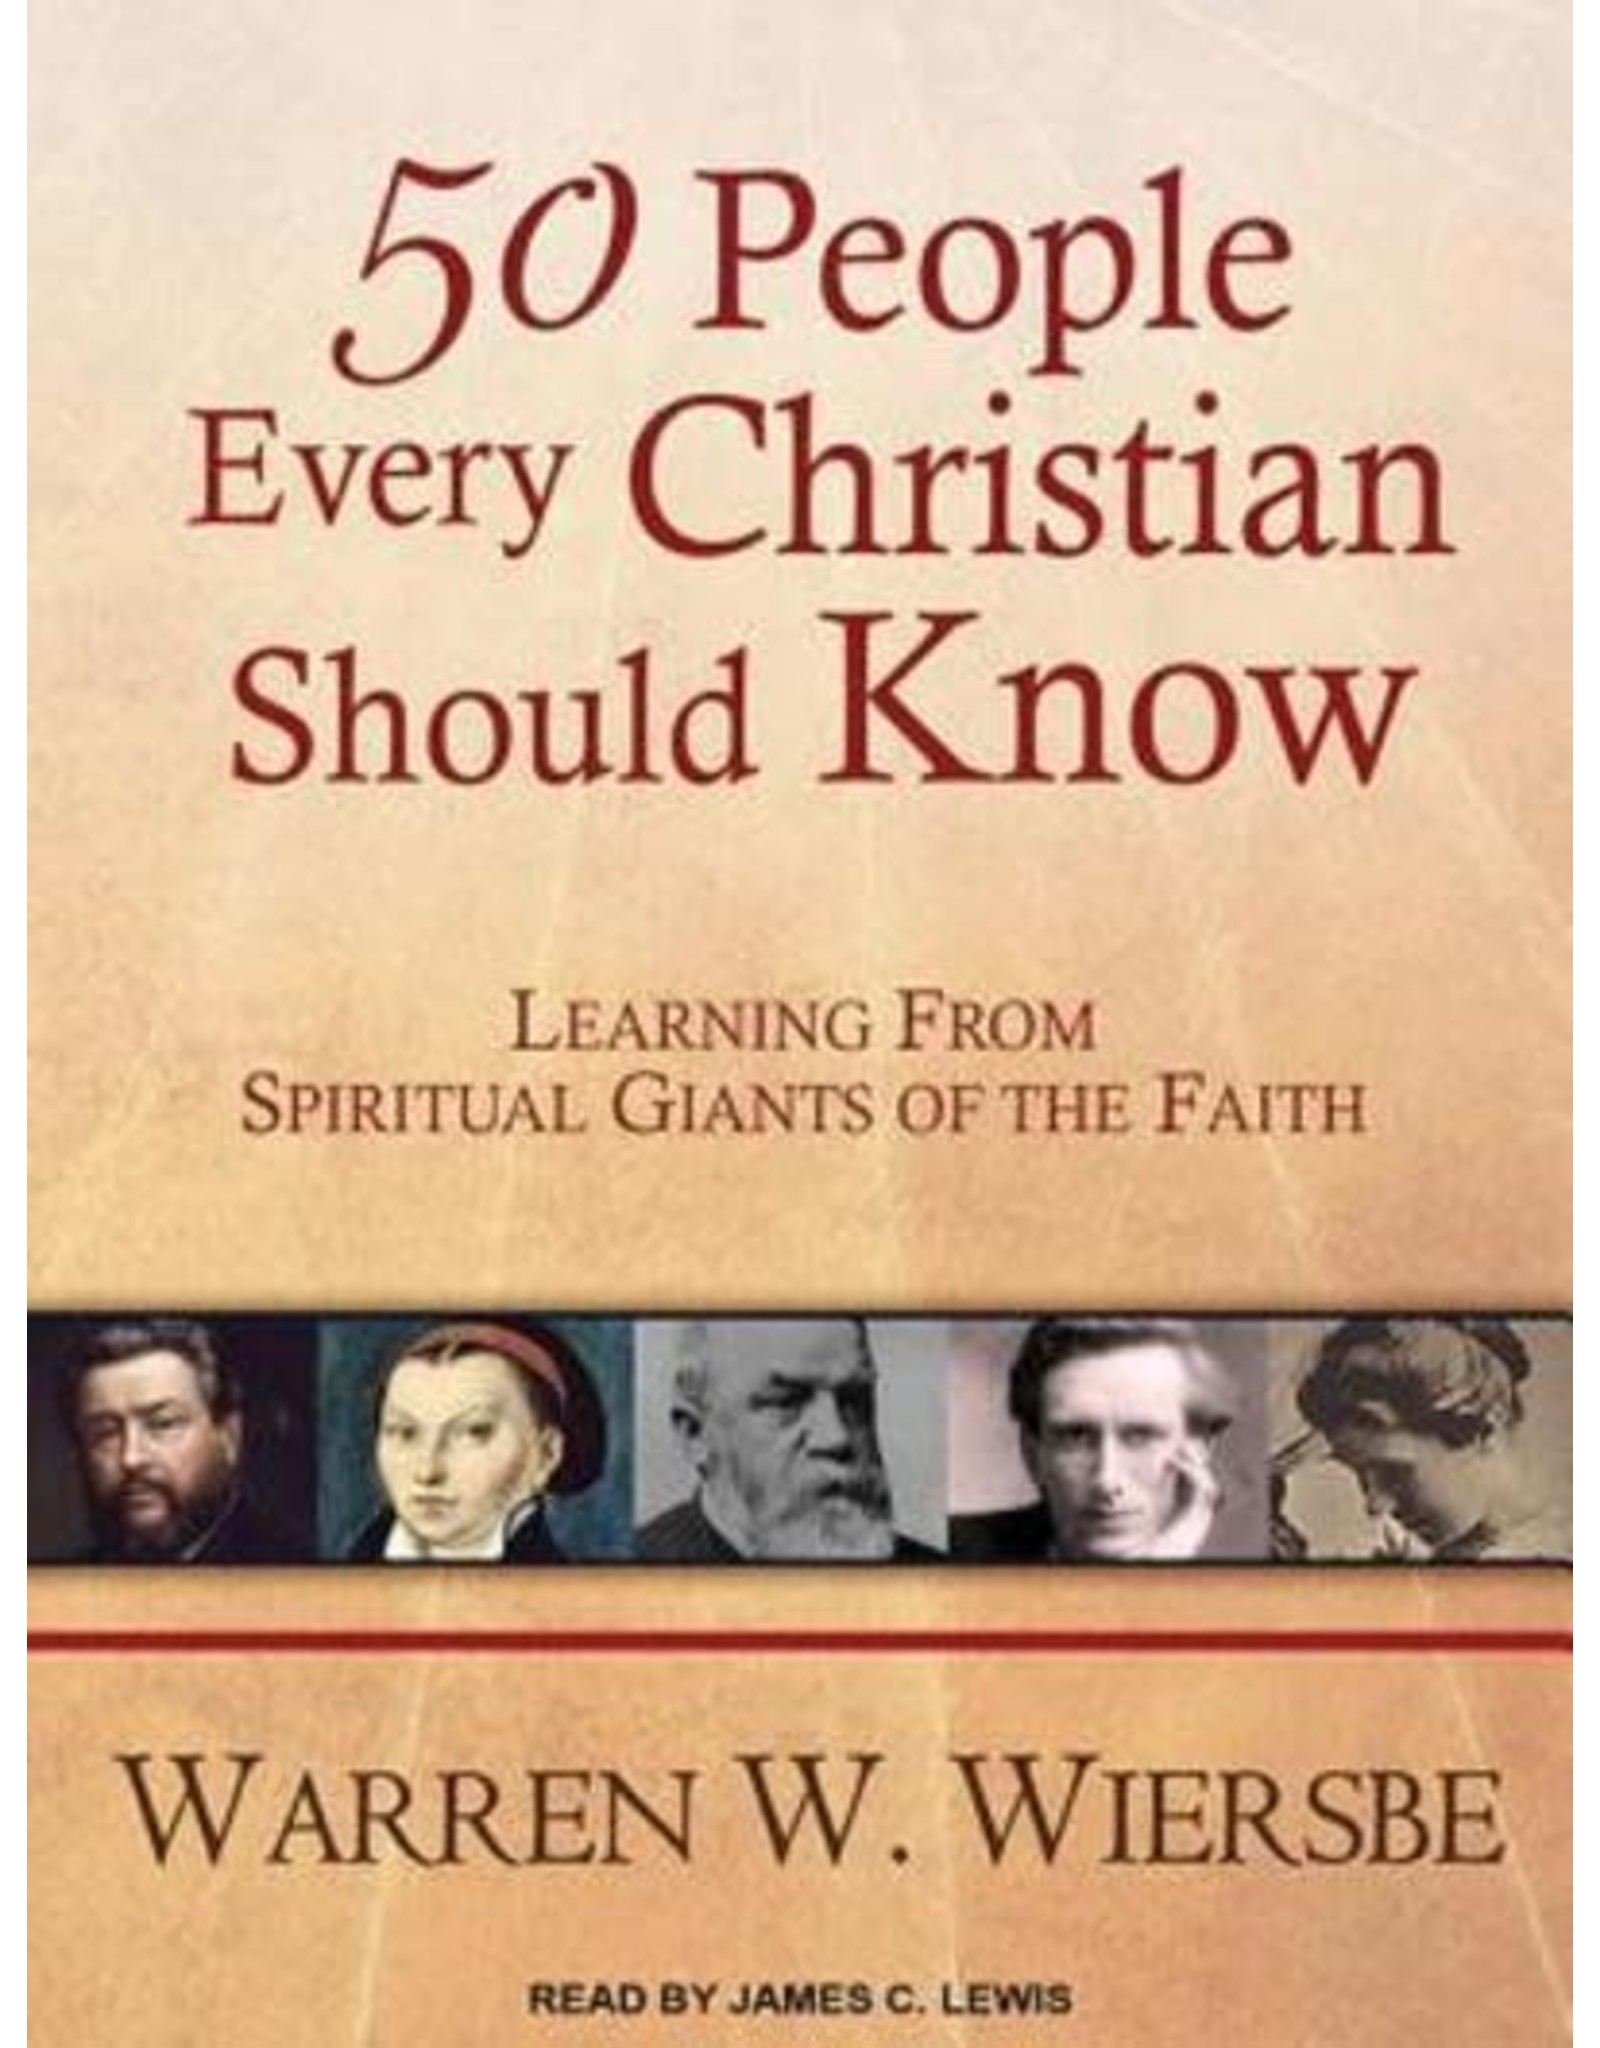 50 People Every Christian Should Know Learning from Spiritual Giants of the Faith by Warren W. Wiersbe, Narrated by James C. Lewis (Audio CD Set)